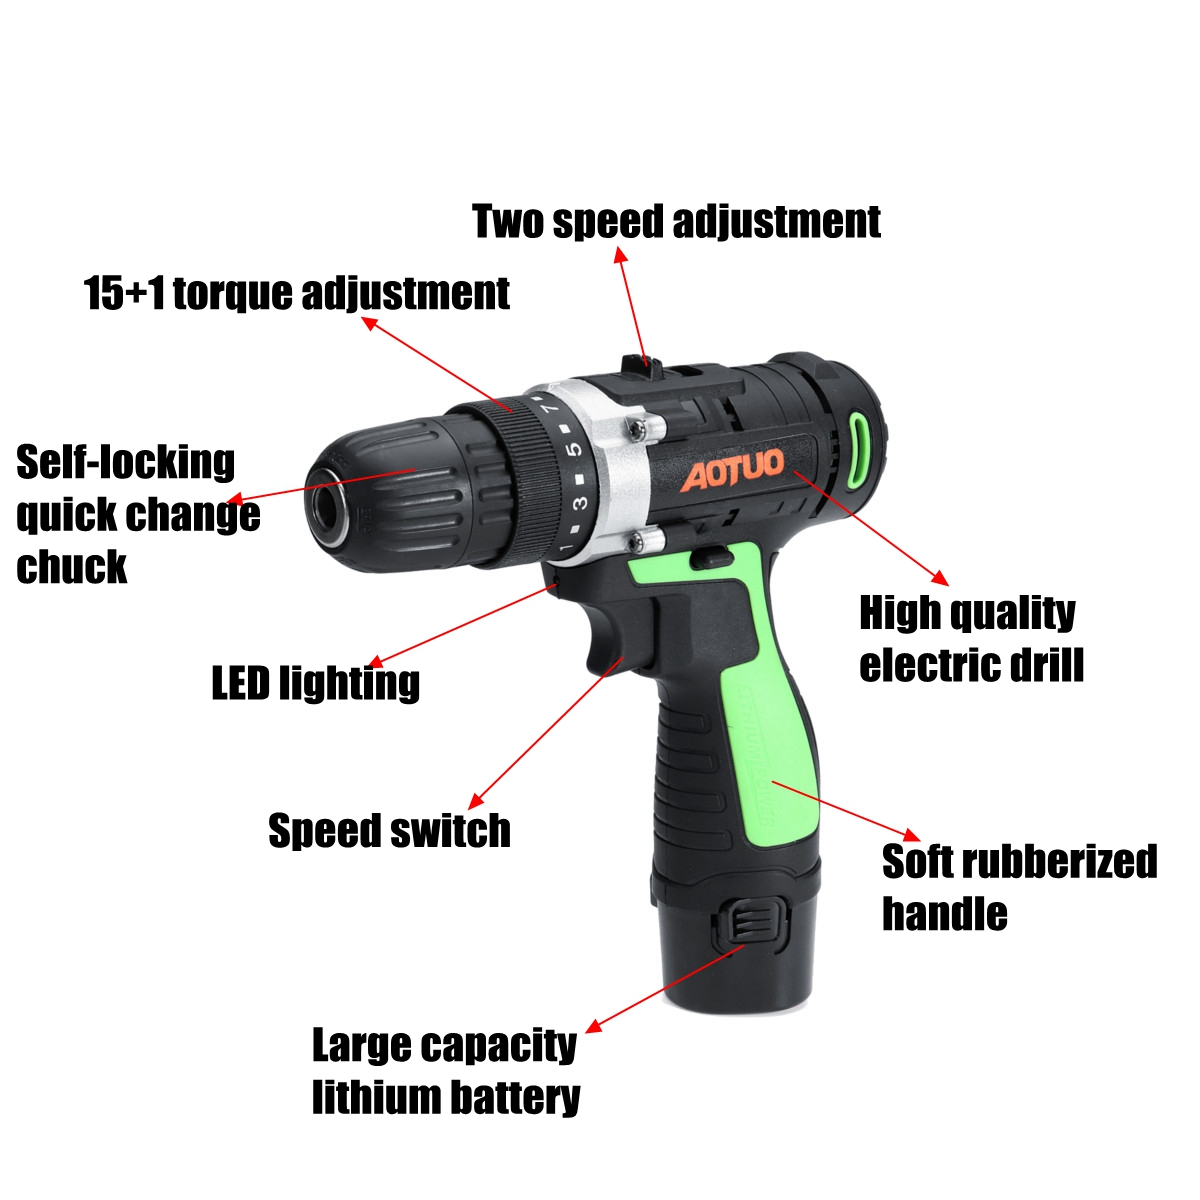 AOTUO 12V Li-Ion Cordless Power Drills Kit Electric Screwdriver Single /Double Speed 2 Battery